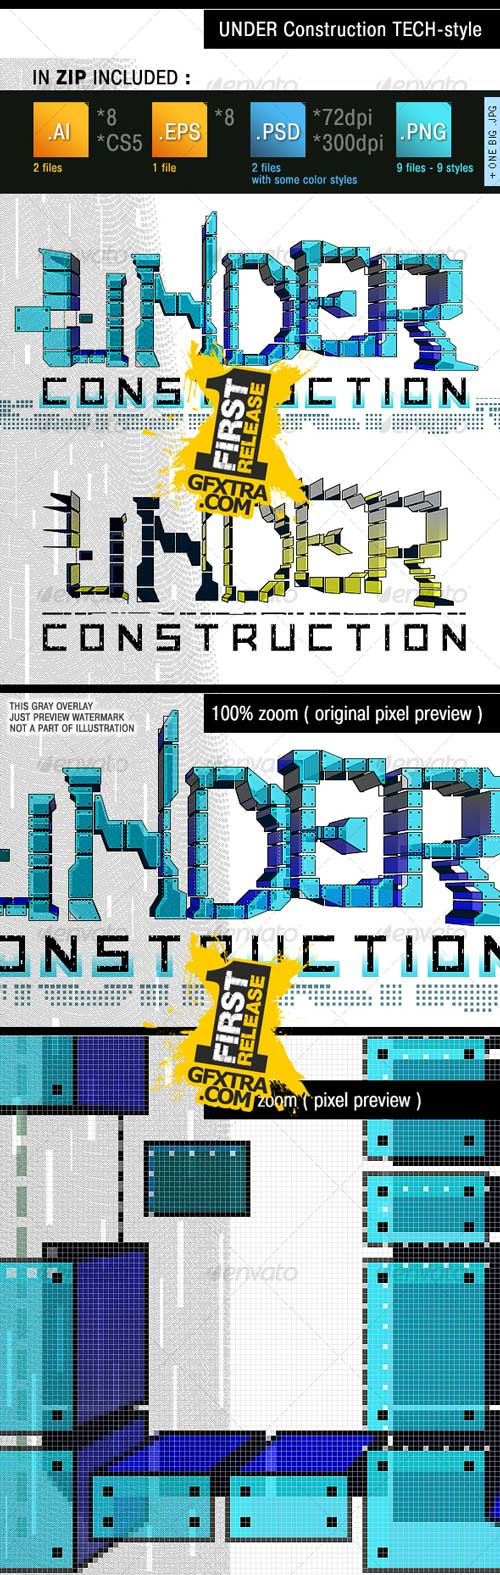 Under Construction Tech - GraphicRiver-REUPLOADED!